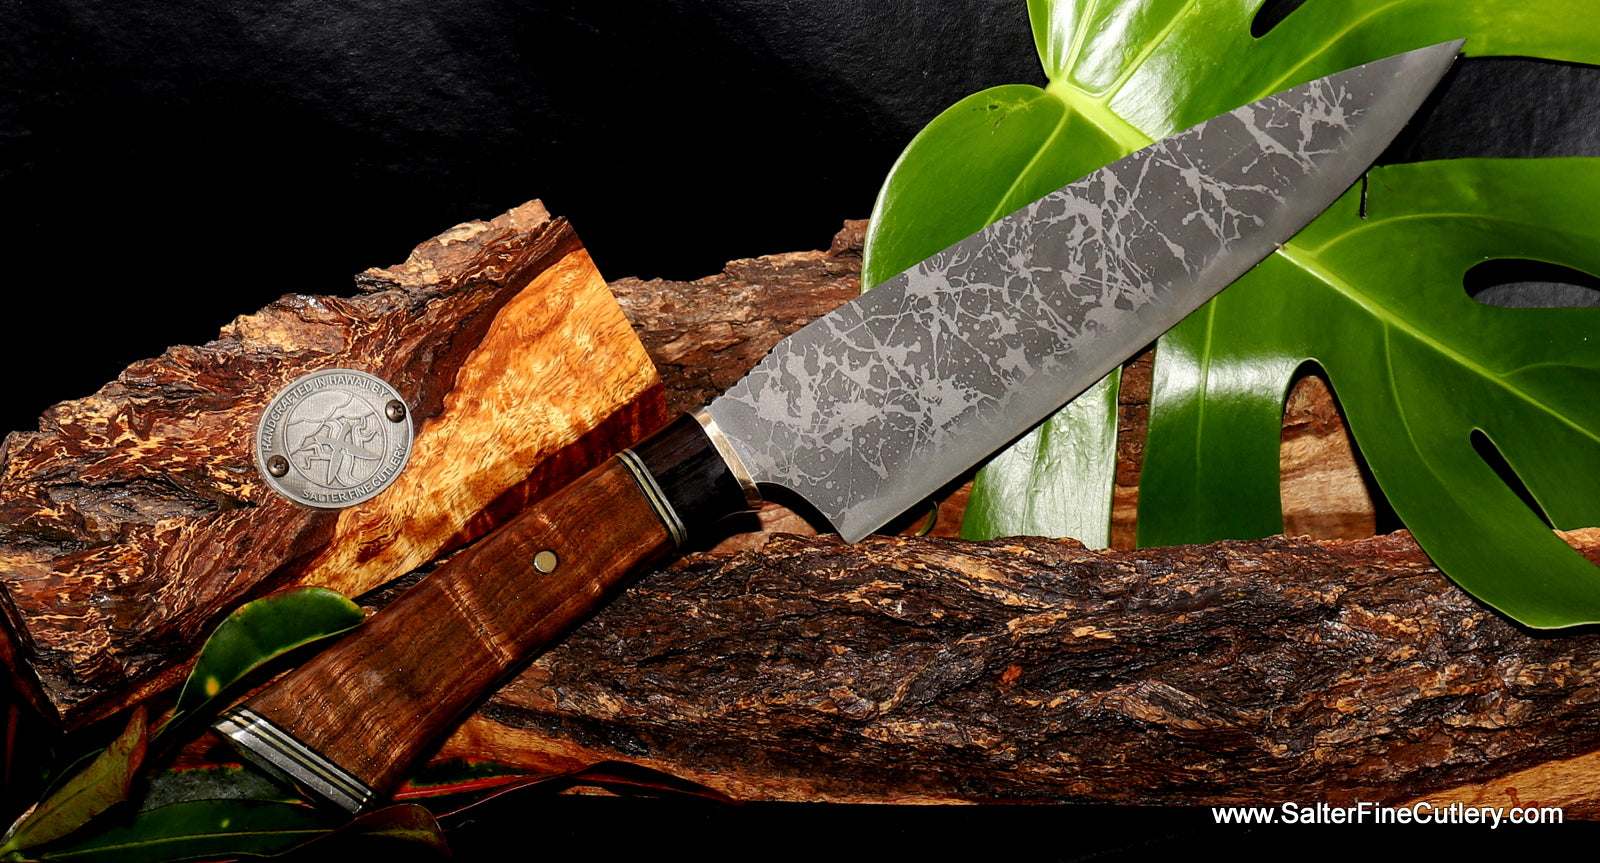 Very limited edition collectible knife with blade by Kiku made exclusively for Salter Fine Cutlery of Hawaii